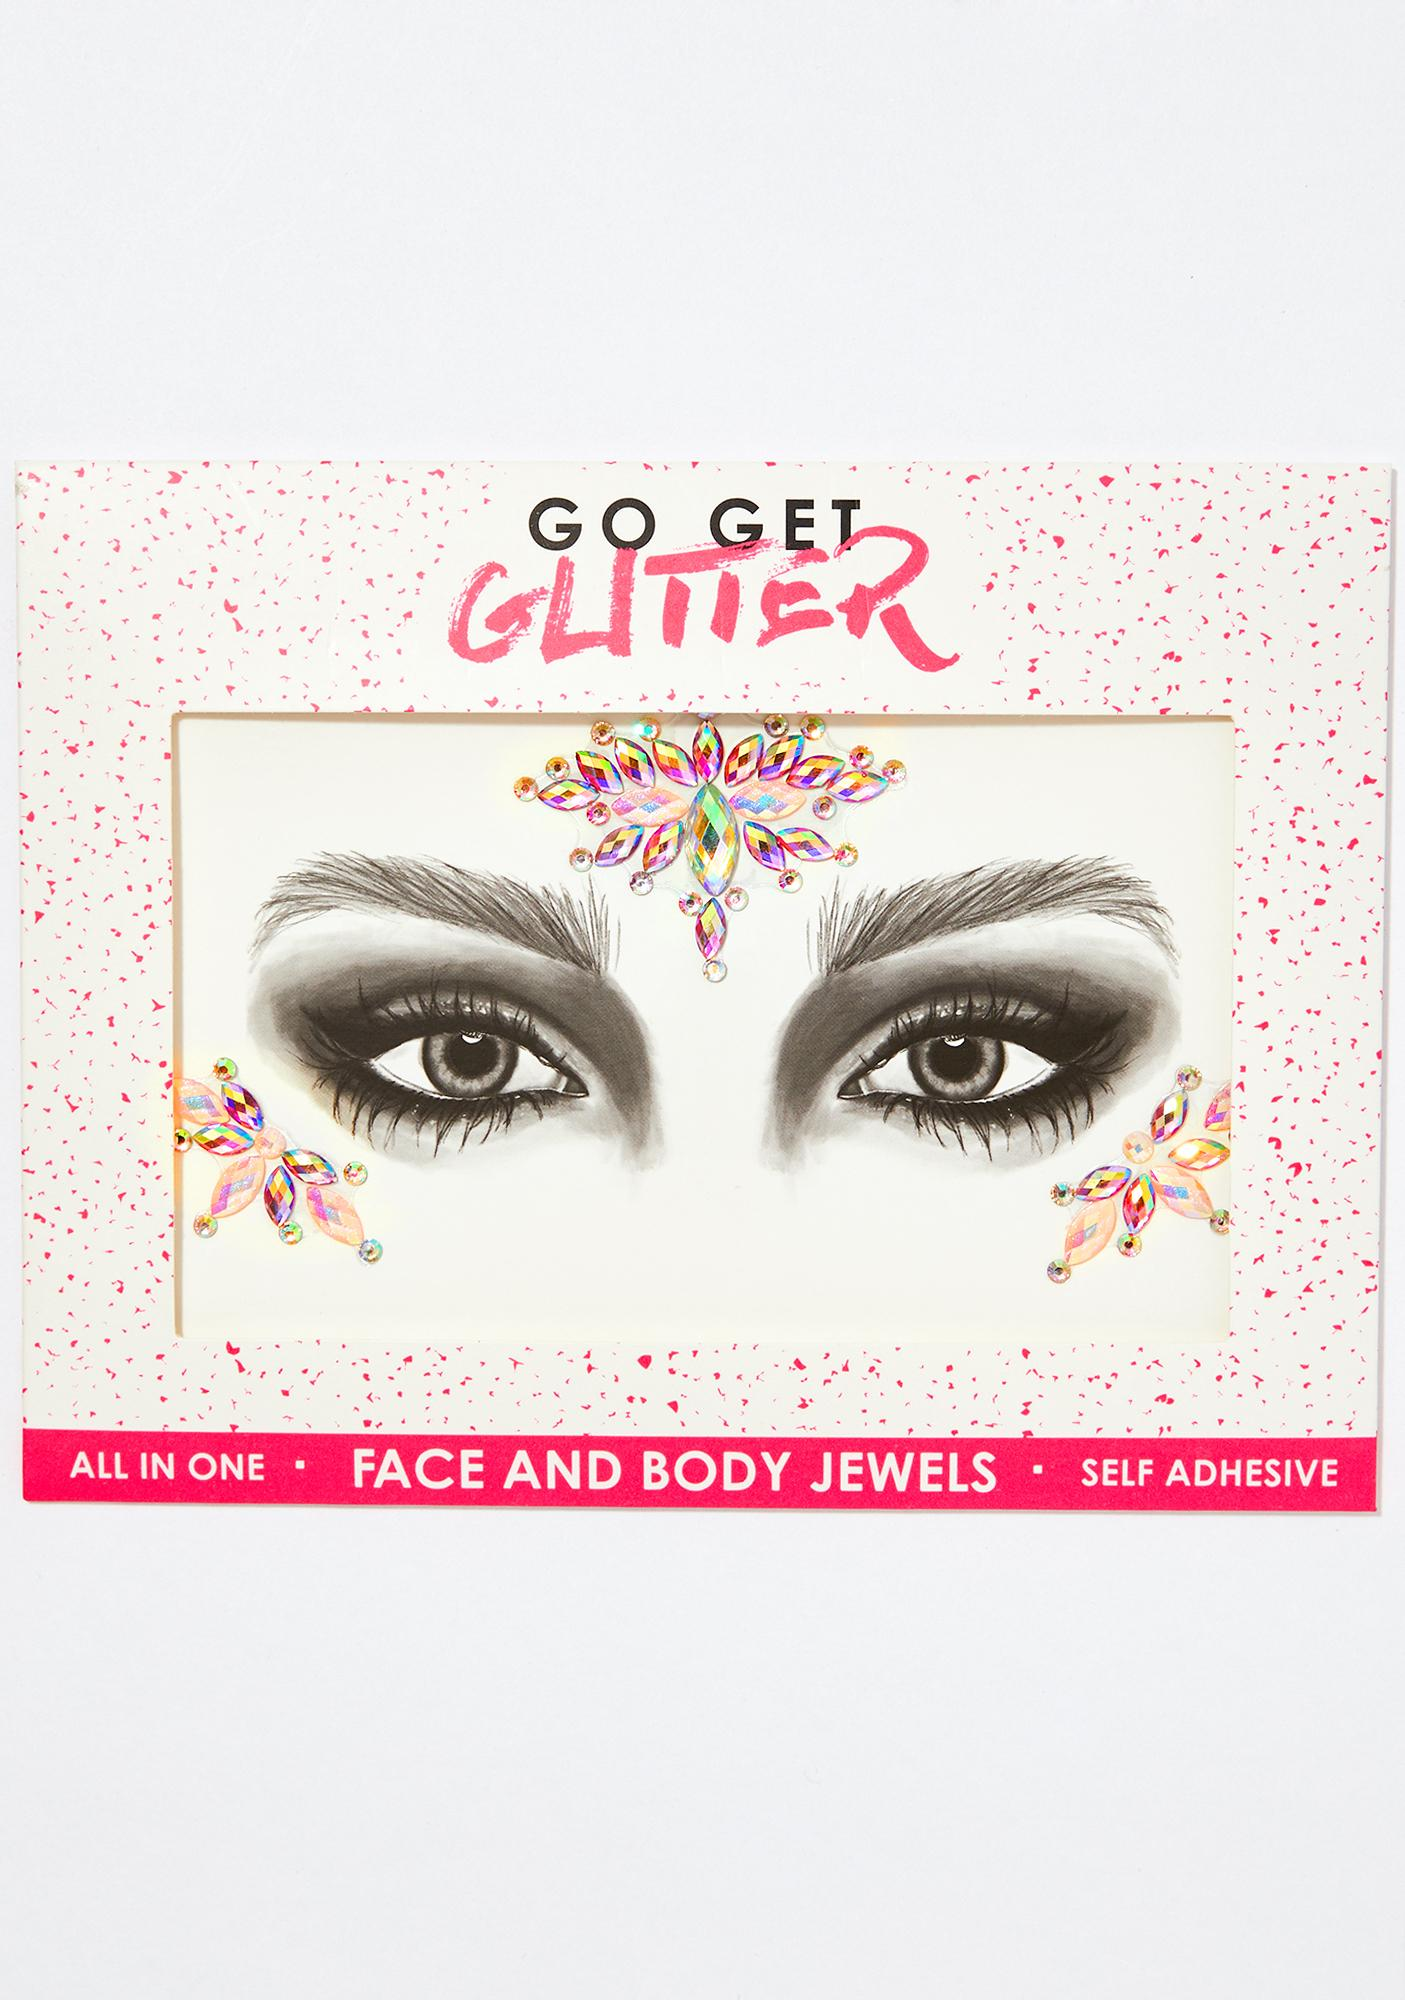 Go Get Glitter Pink Lemonade Face Jewels